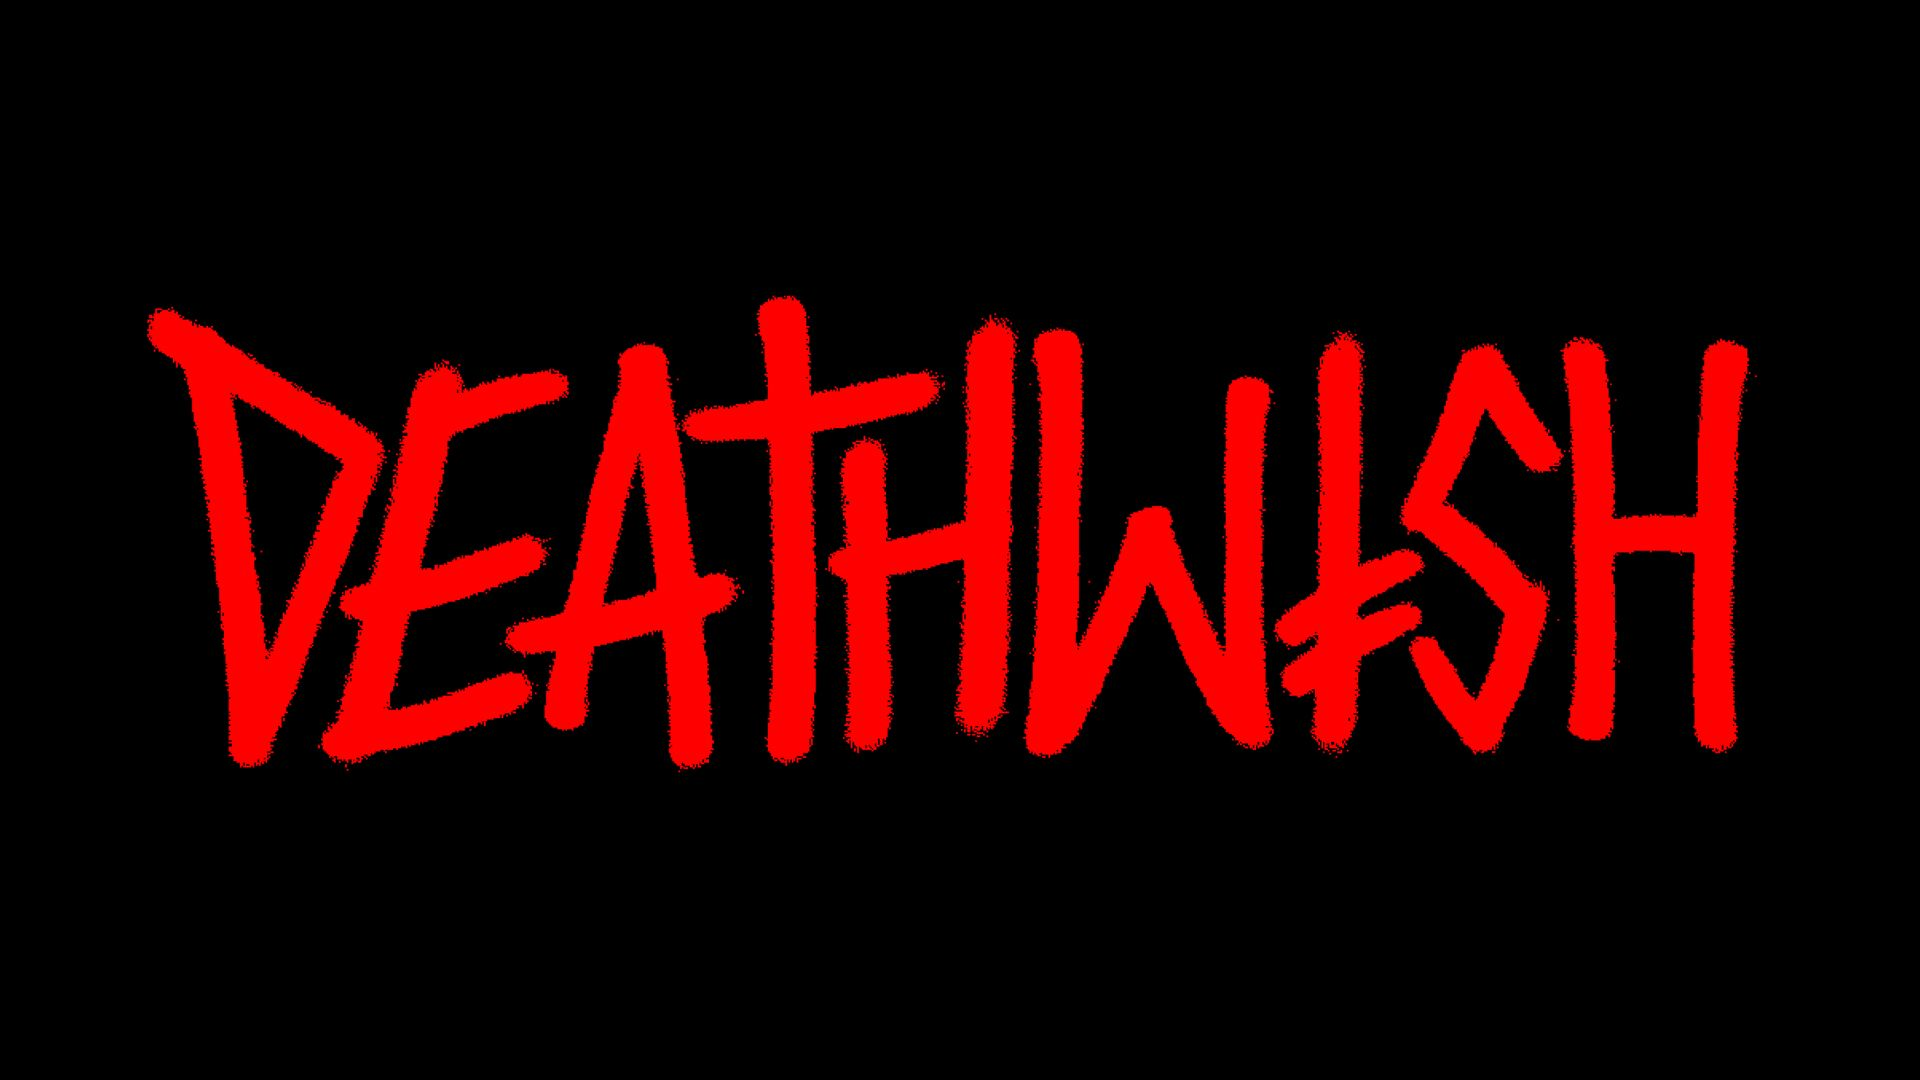 Death Wish Skateboards Wallpaper